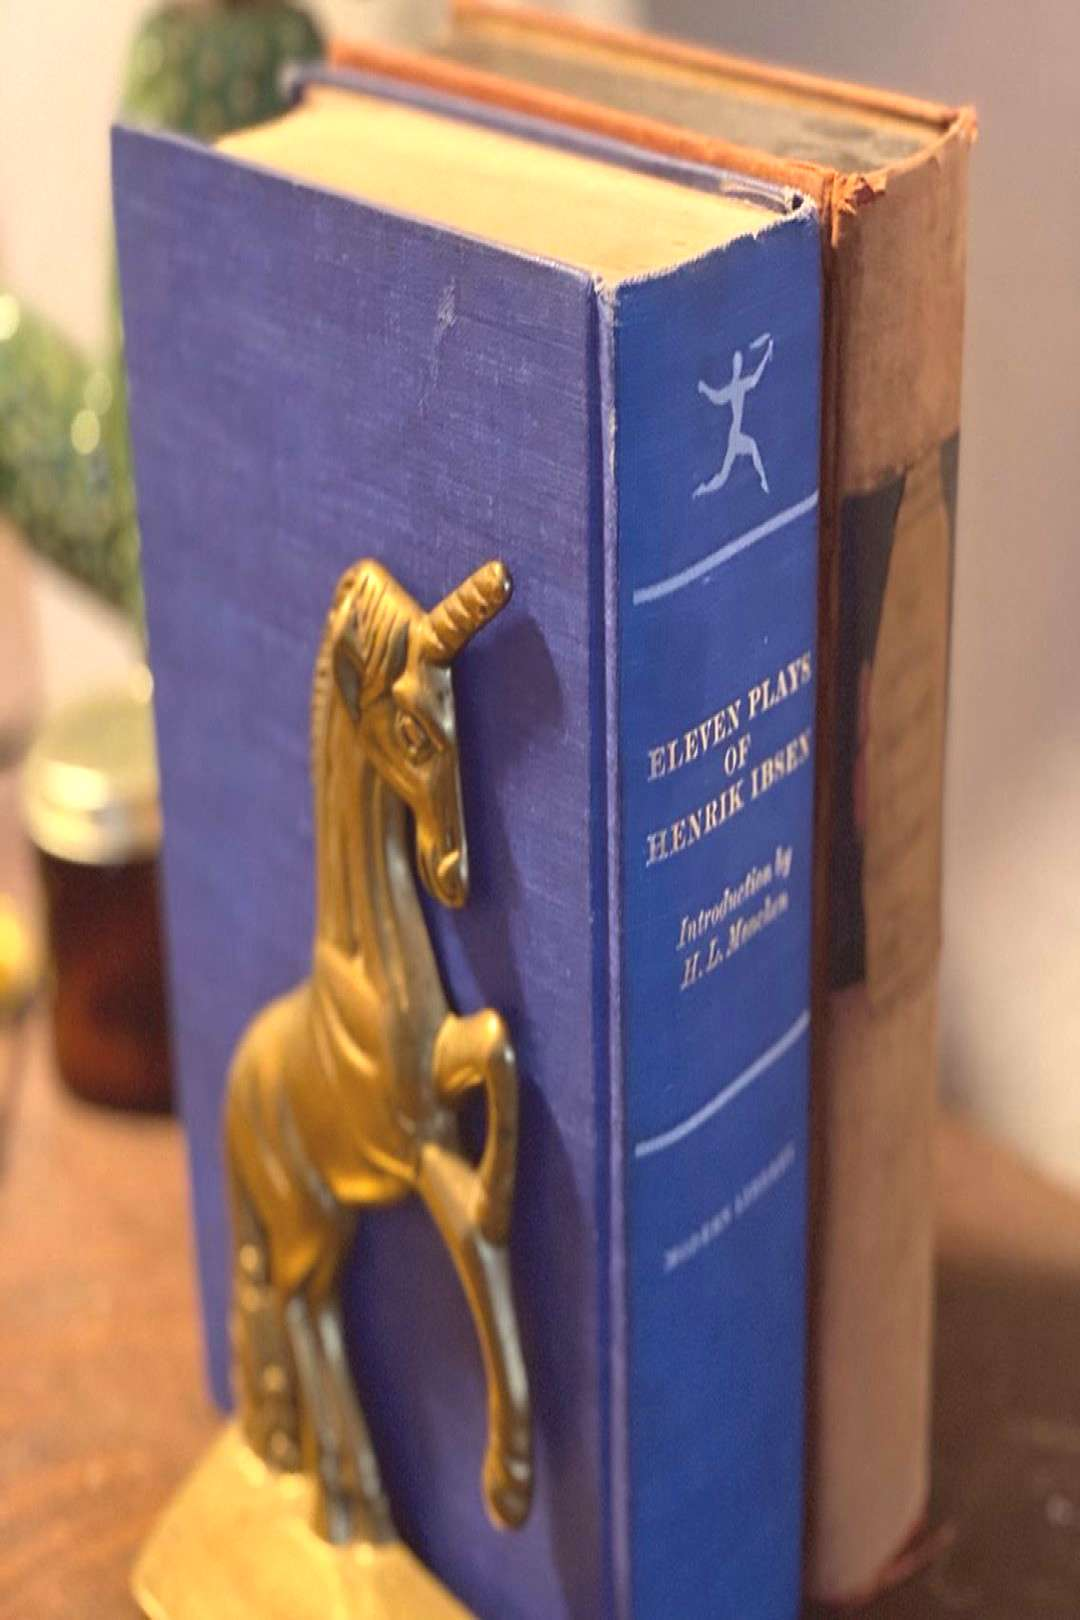 Vintage Brass Unicorn Bookends 6.5quotx4quot $35 + Shipping // I think